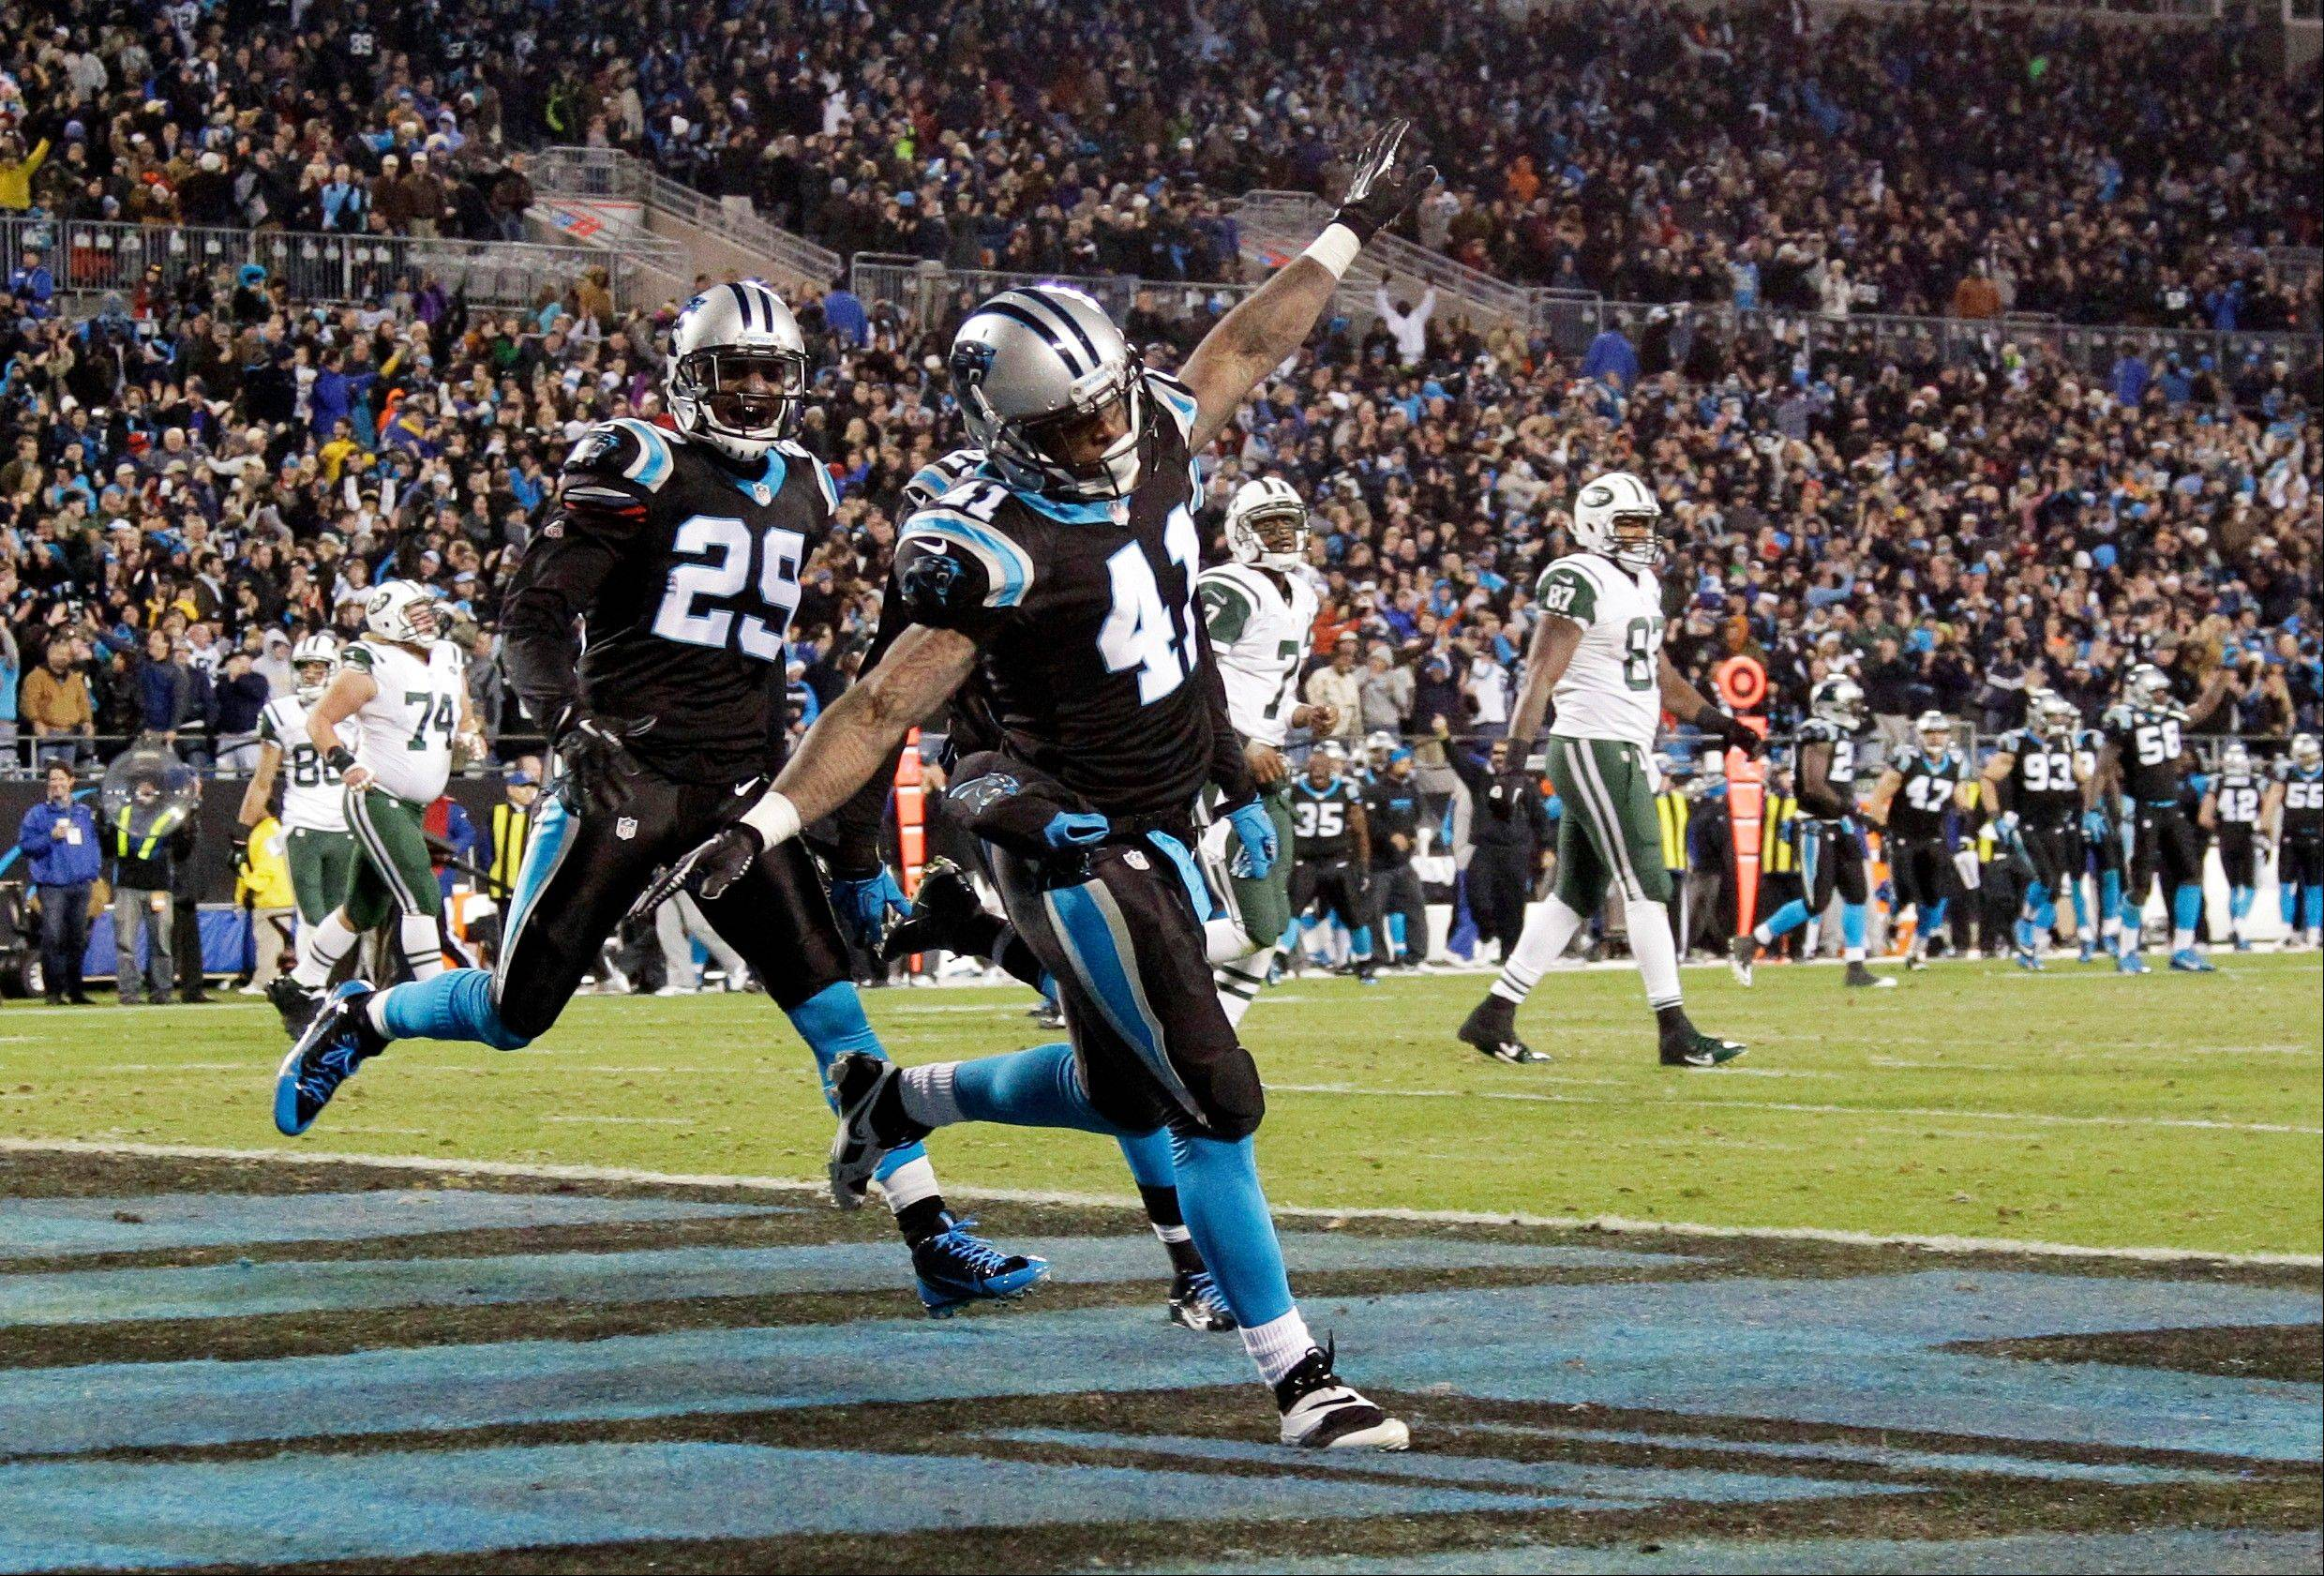 Carolina Panthers' Captain Munnerlyn (41) celebrates his interception return for a touchdown with Drayton Florence (29) during the second half of an NFL football game against the New York Jets in Charlotte, N.C., Sunday, Dec. 15, 2013.